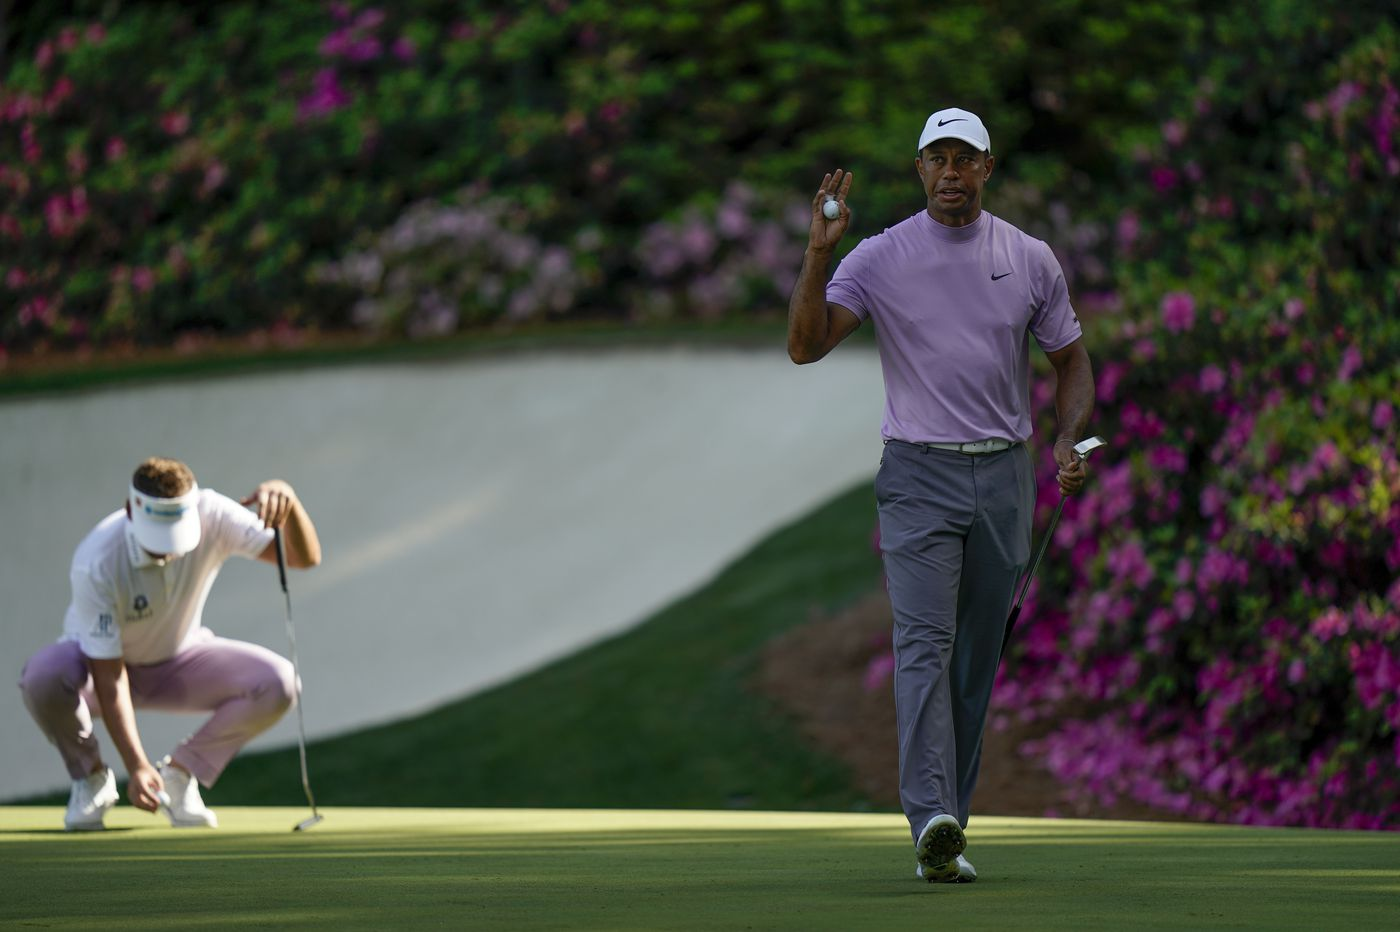 $85K wager on Tiger Woods winning Masters to pay $1.19M